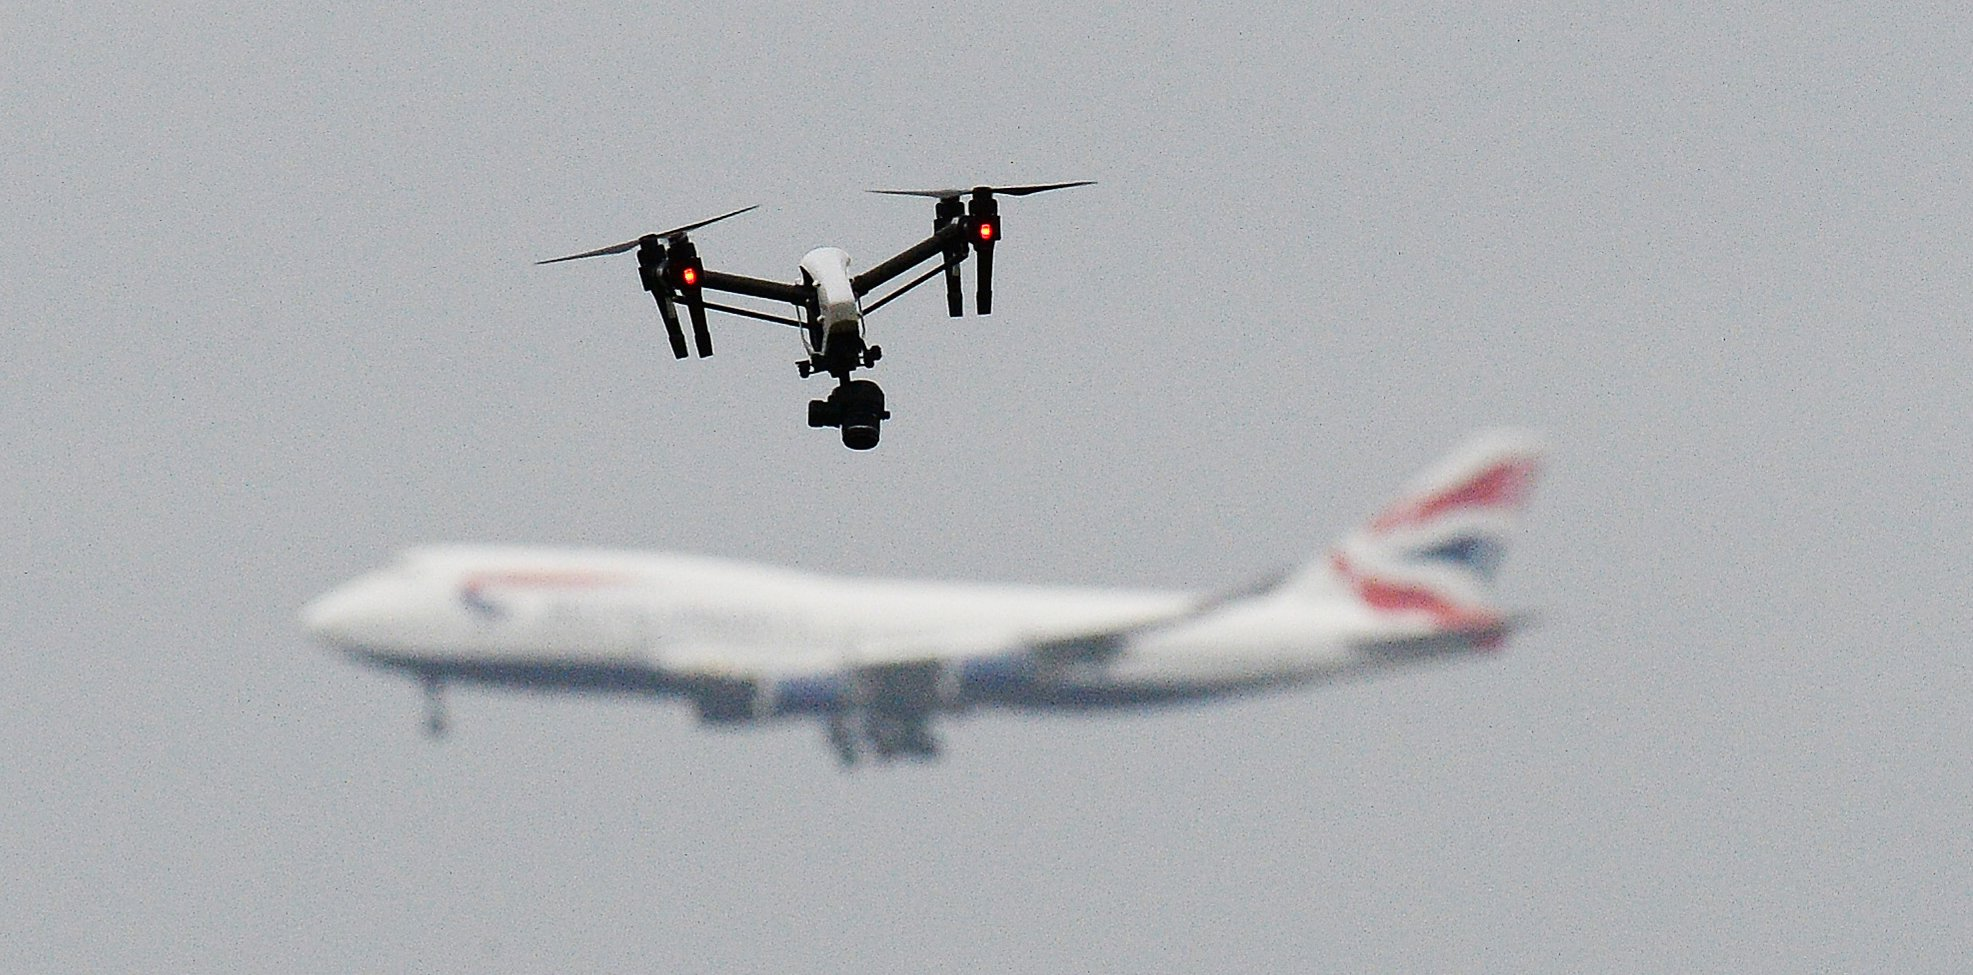 """The drone attack that brought Gatwick to a standstill before Christmas is believed to have been an """"inside job"""", according to Whitehall sources FILE PHOTO dated 25/2/2017 of a drone and an aircraft. Gatwick airport remains closed this morning after drones were spotted over the airfield last night and this morning."""